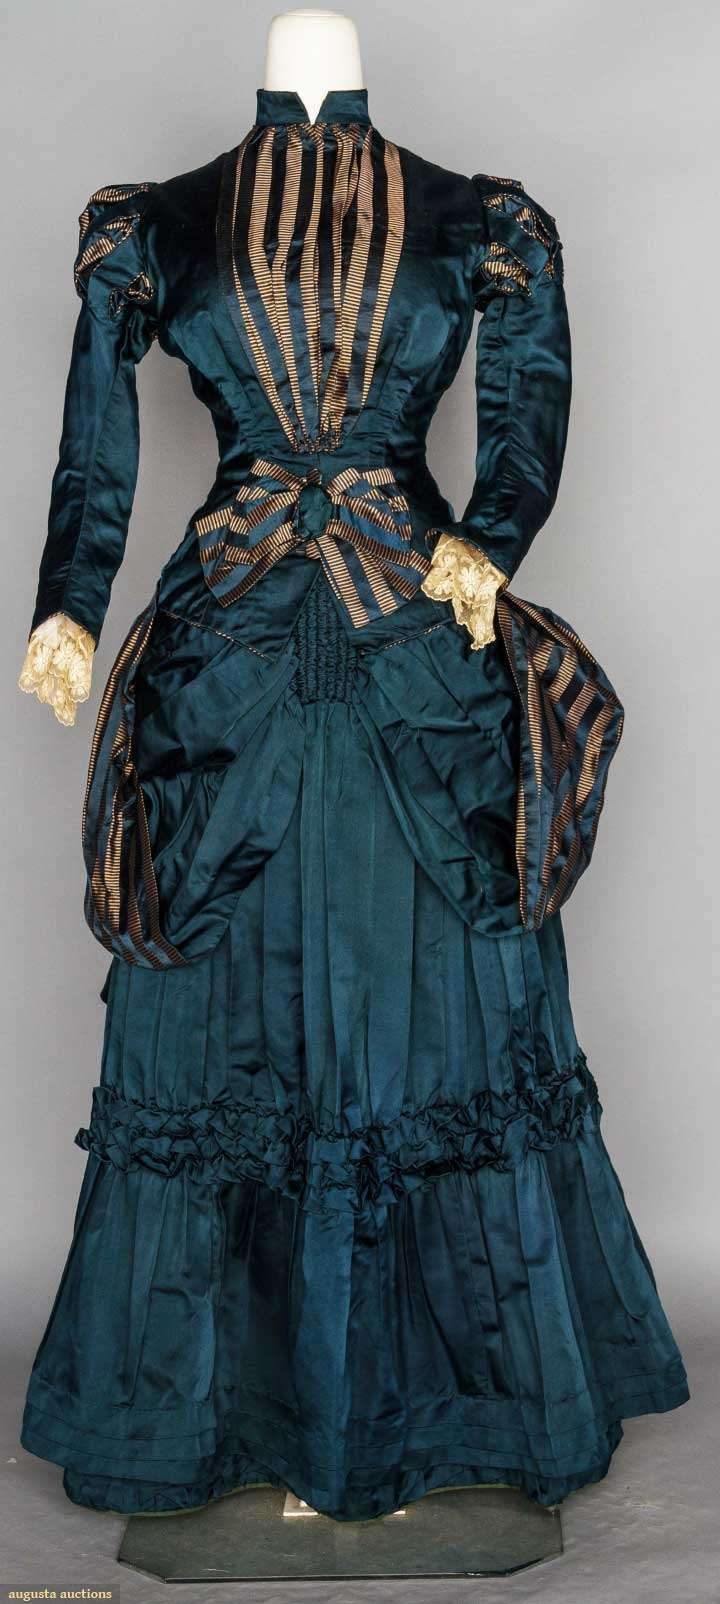 YOUNG LADY'S BUSTLE DRESS, 1880's, 1-piece navy silk satin, bodice & bustle skirt trimmed w/ navy & copper striped ribbon | Augusta Auctions